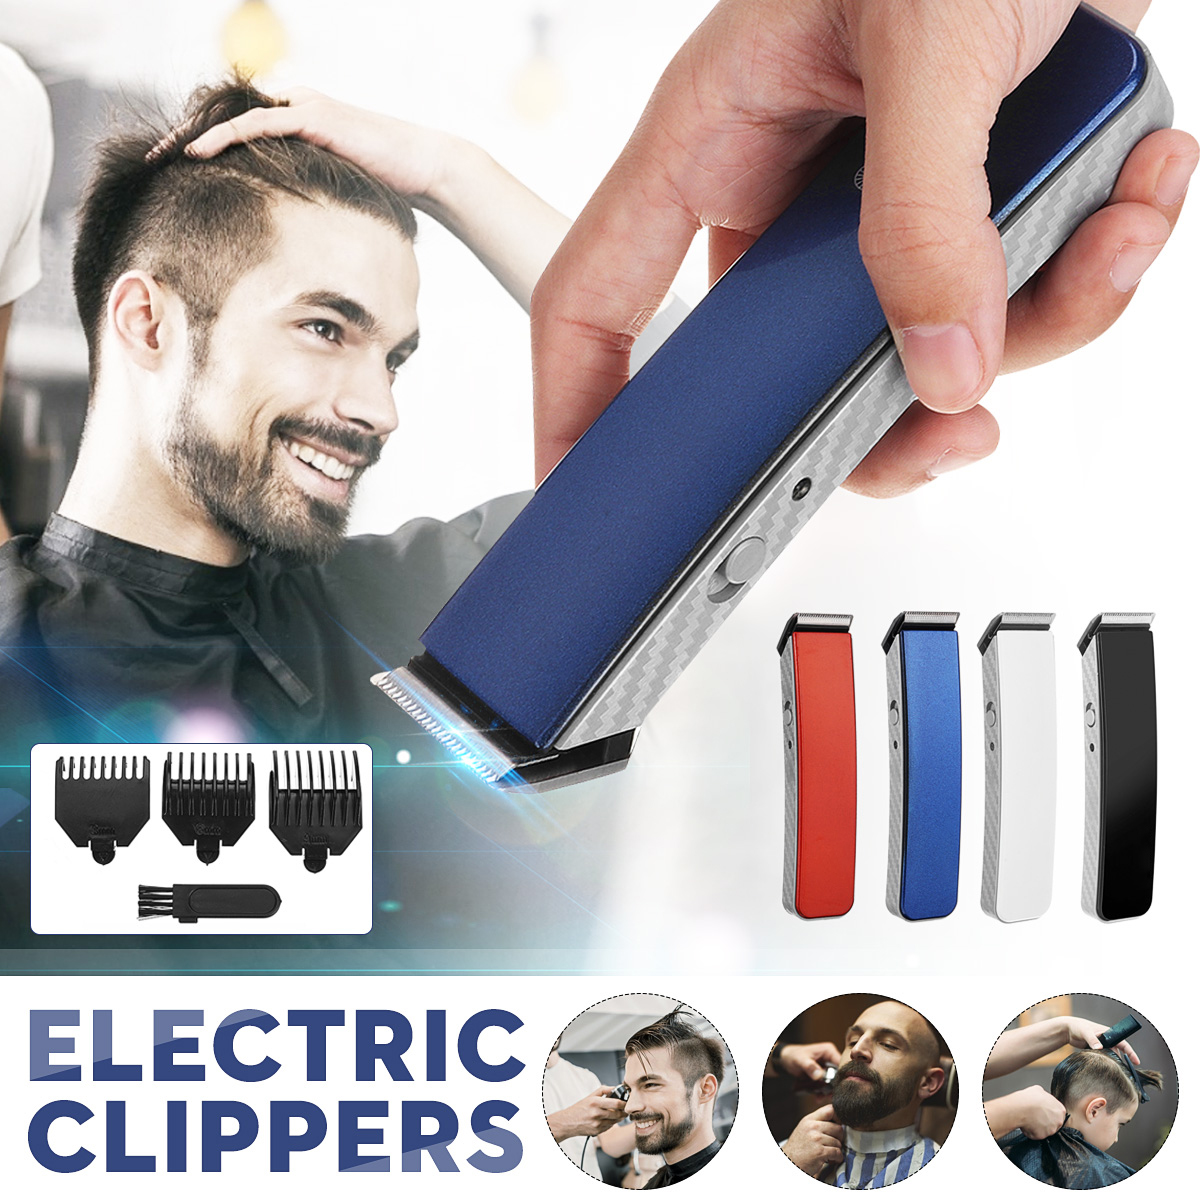 Electric Men's Hair Trimmer with 3 Guide Combs Rechargeable Cordless Hair Clipper Household Men Shaver Razor Beard Haircut